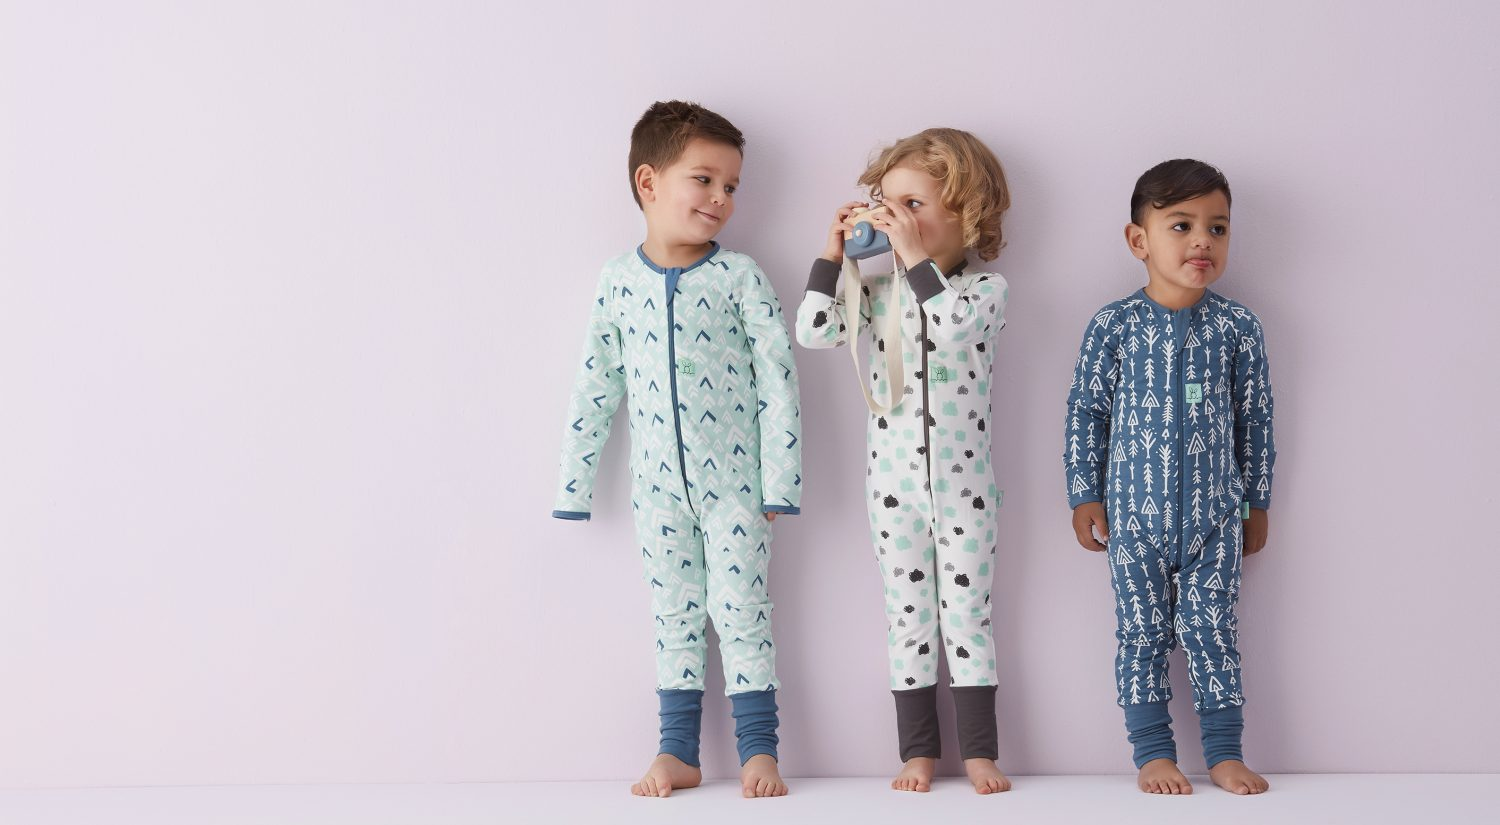 Three little kids standing in ergoPouch sleepwear